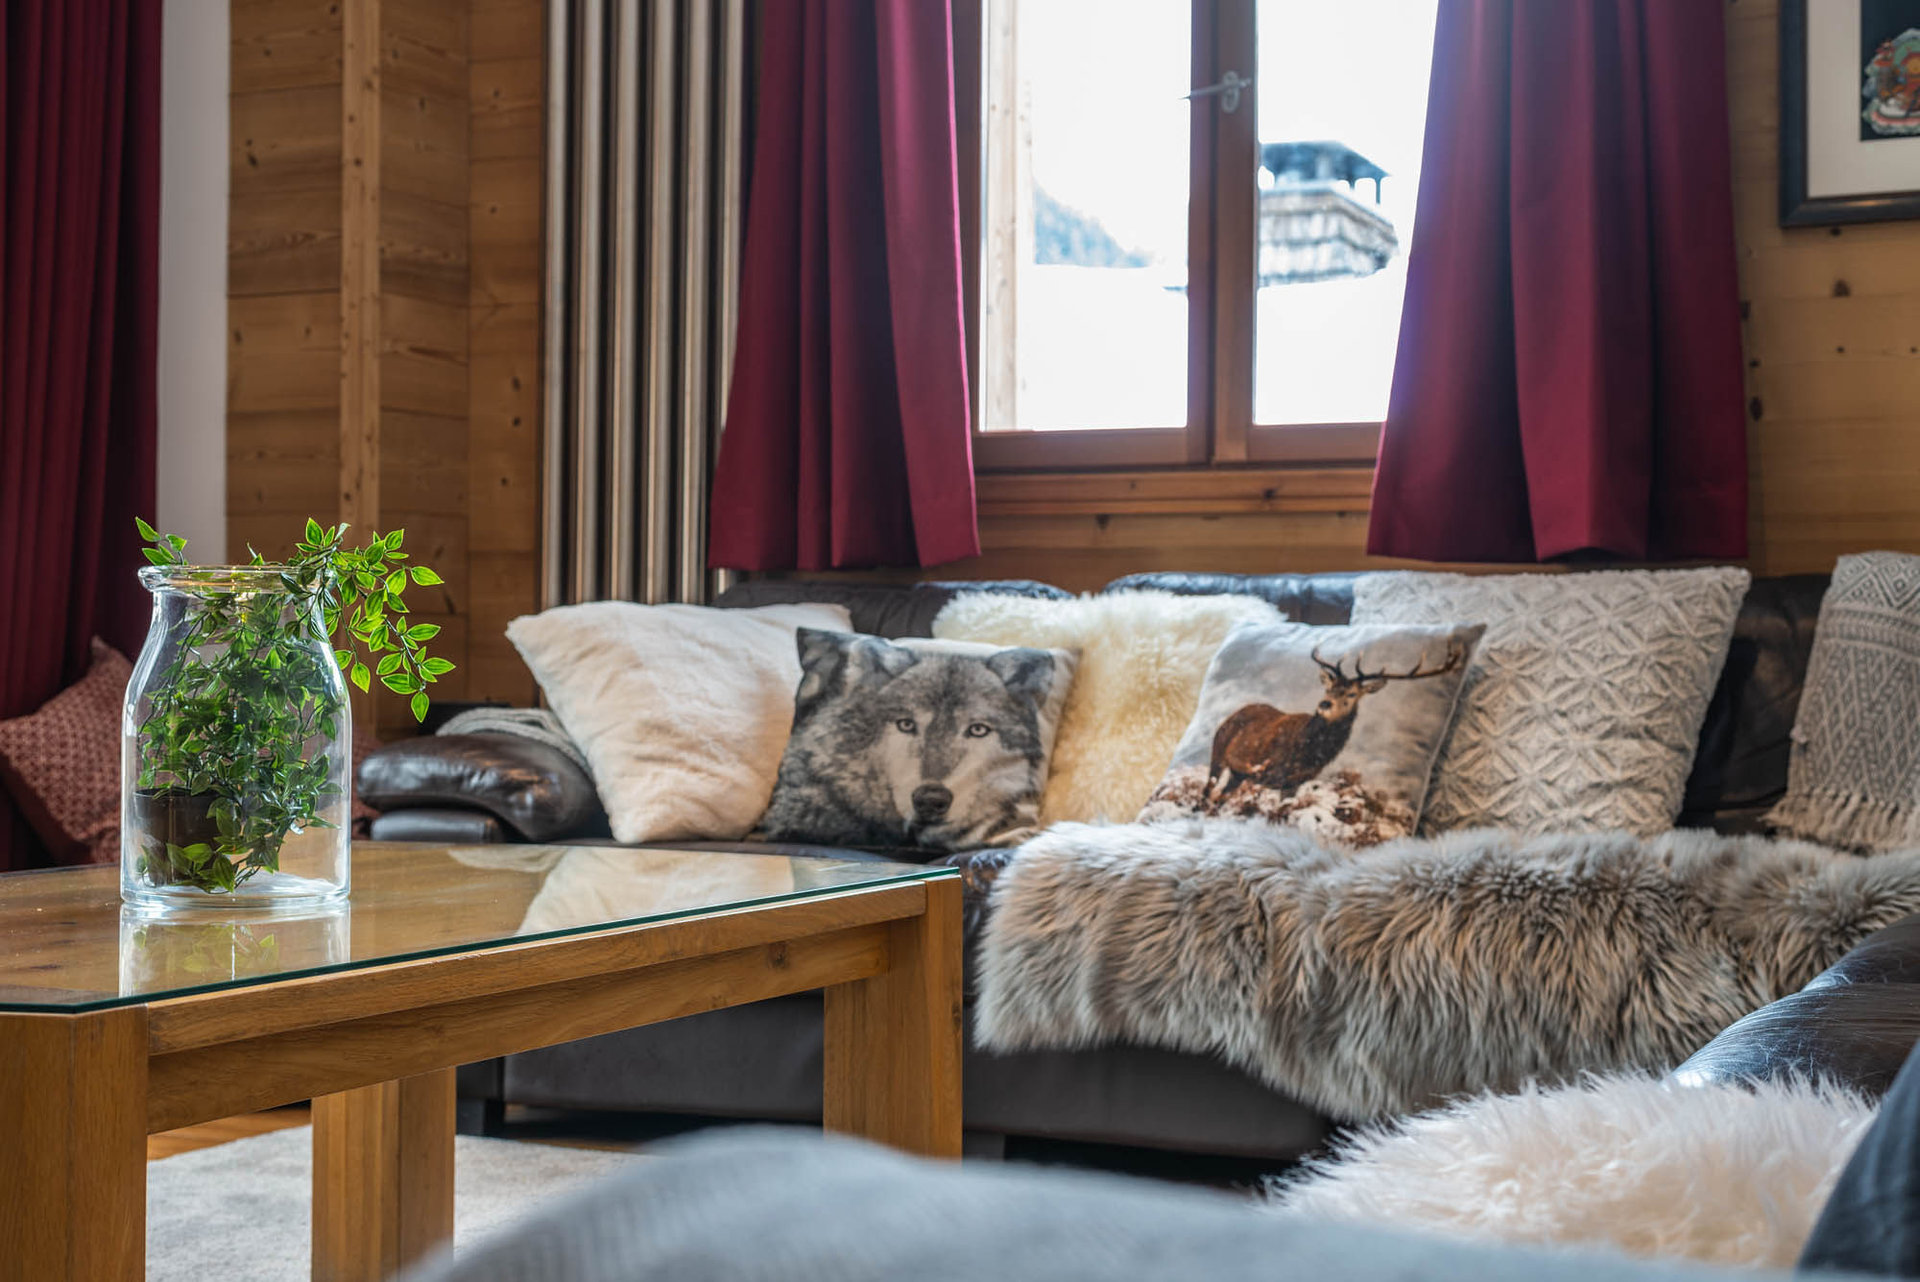 HE Yeti Lodge Chamonix Argentiere grand montets chalet bedroom l HE Yeti Lodge Chamonix Argentiere grand montets chalet bedroom l